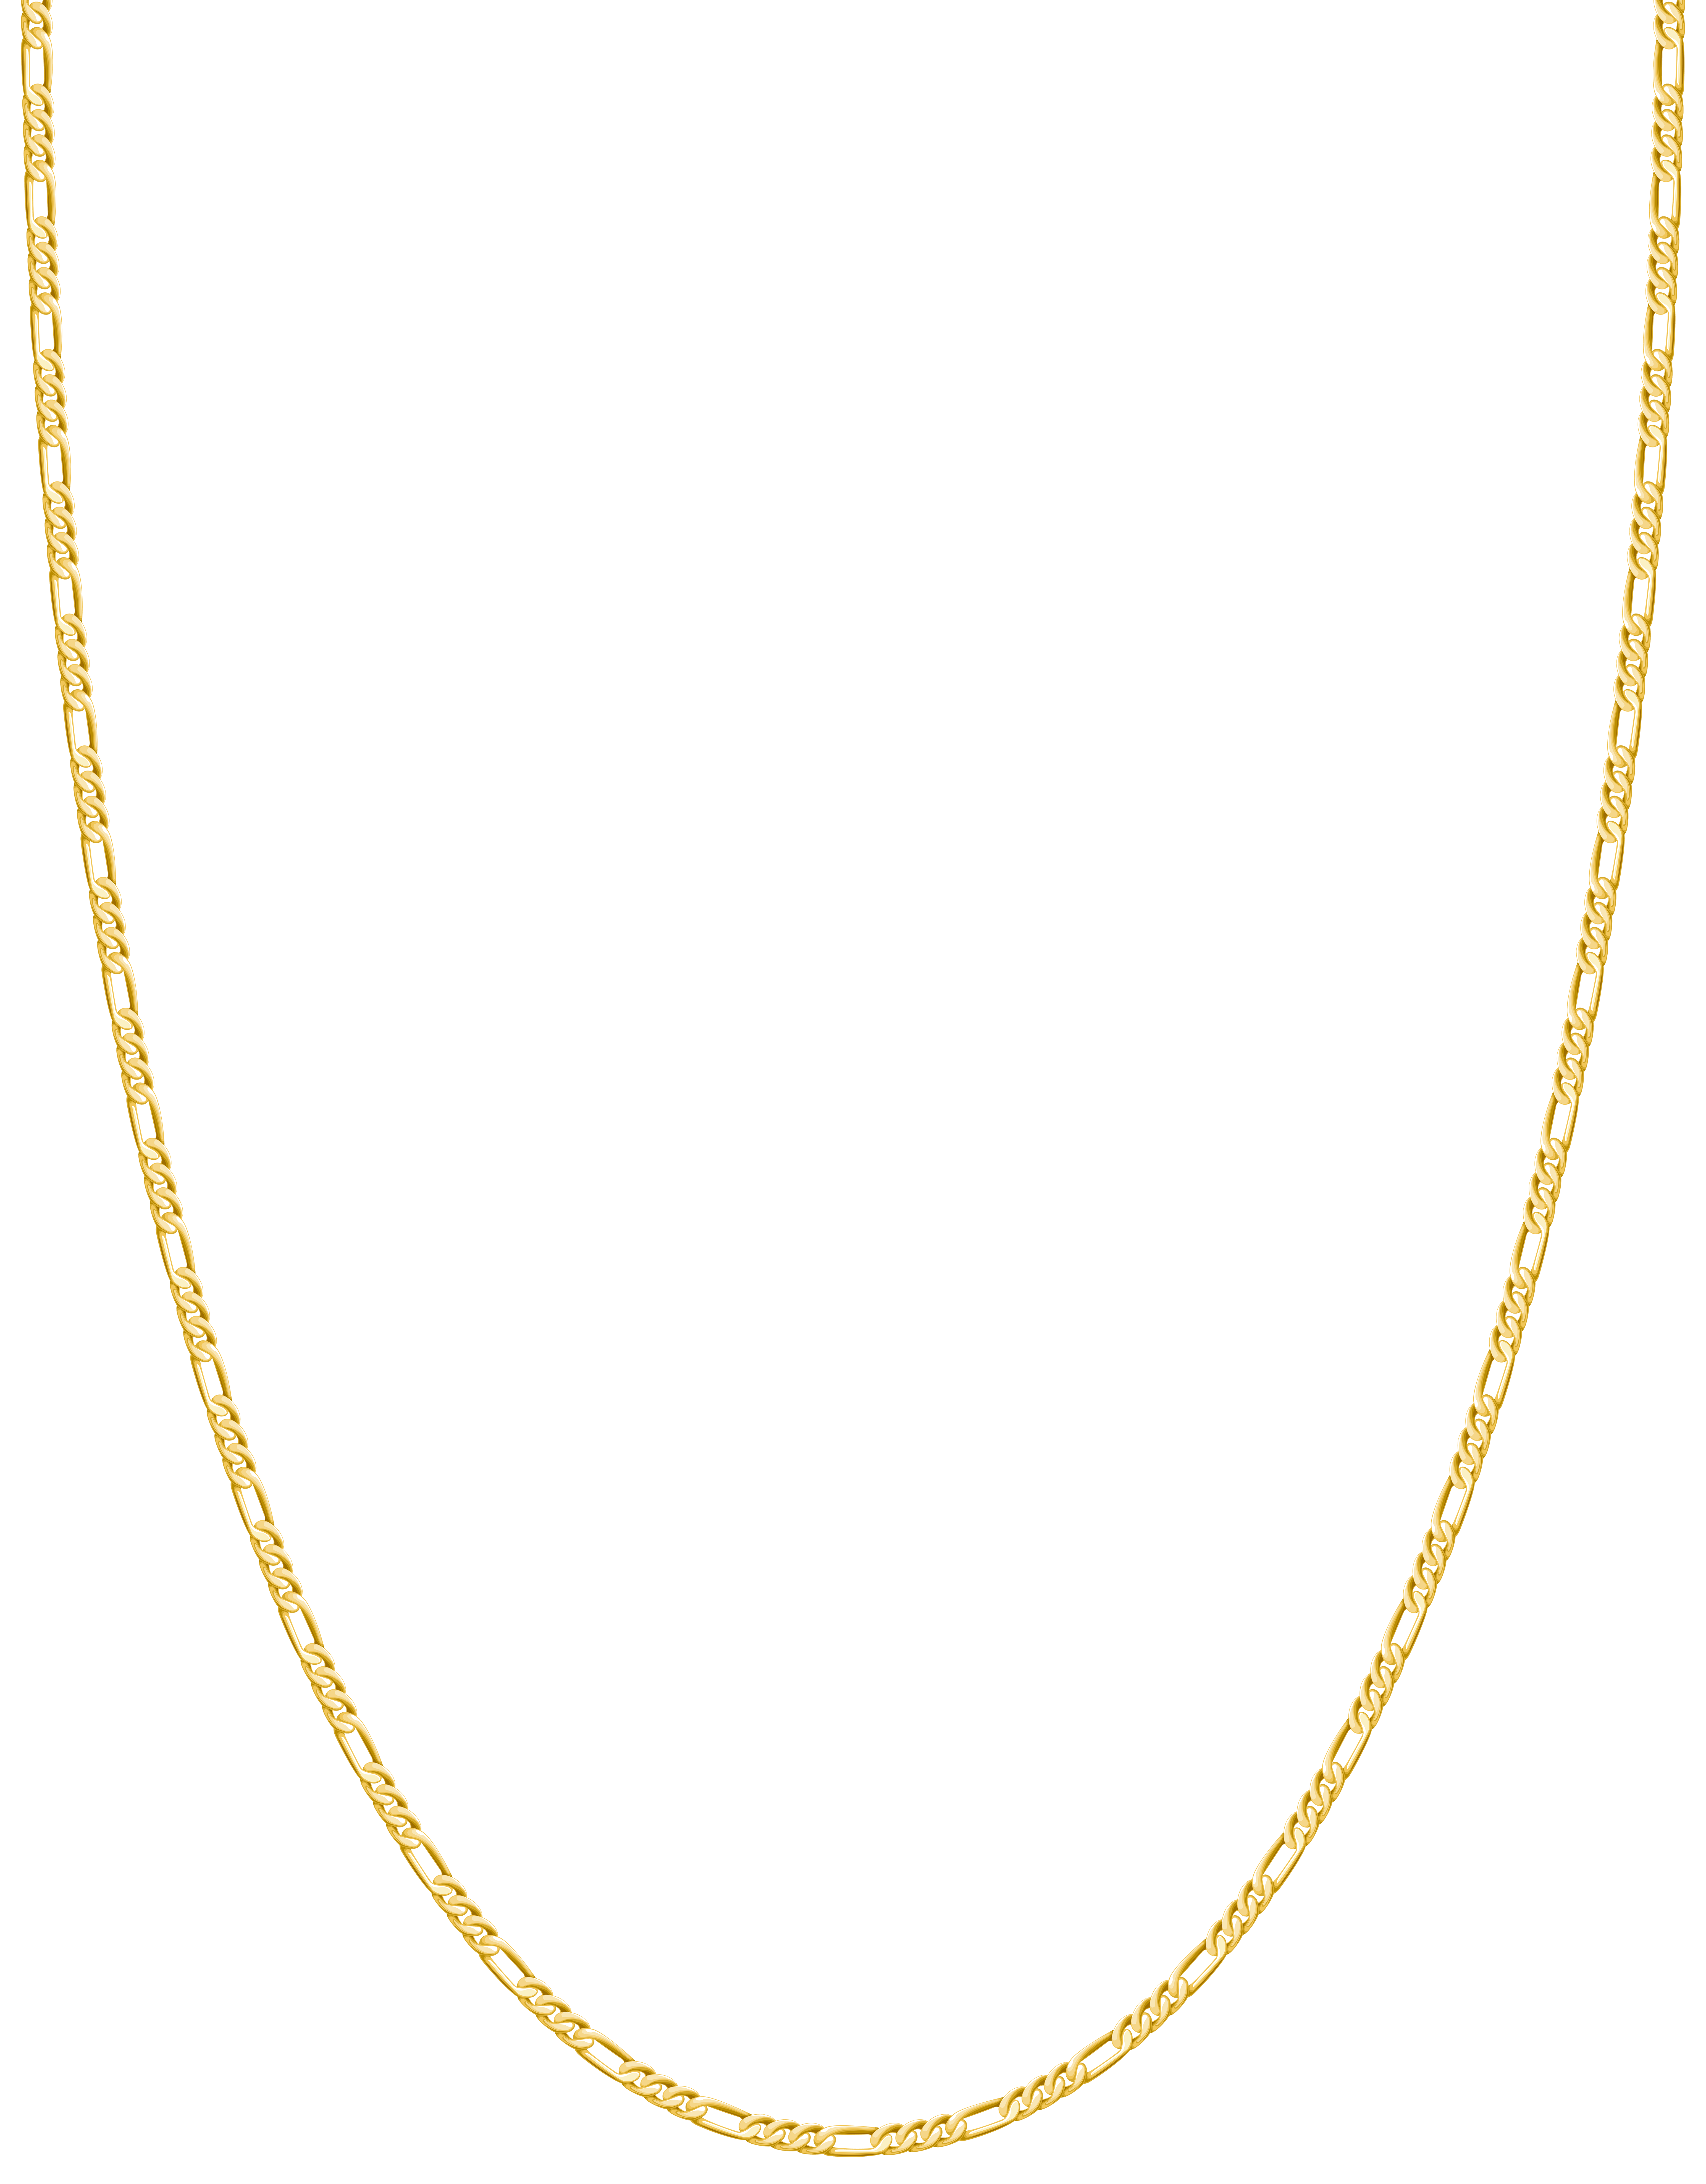 graphic Chain png transparent clip. Golden clipart gold necklace